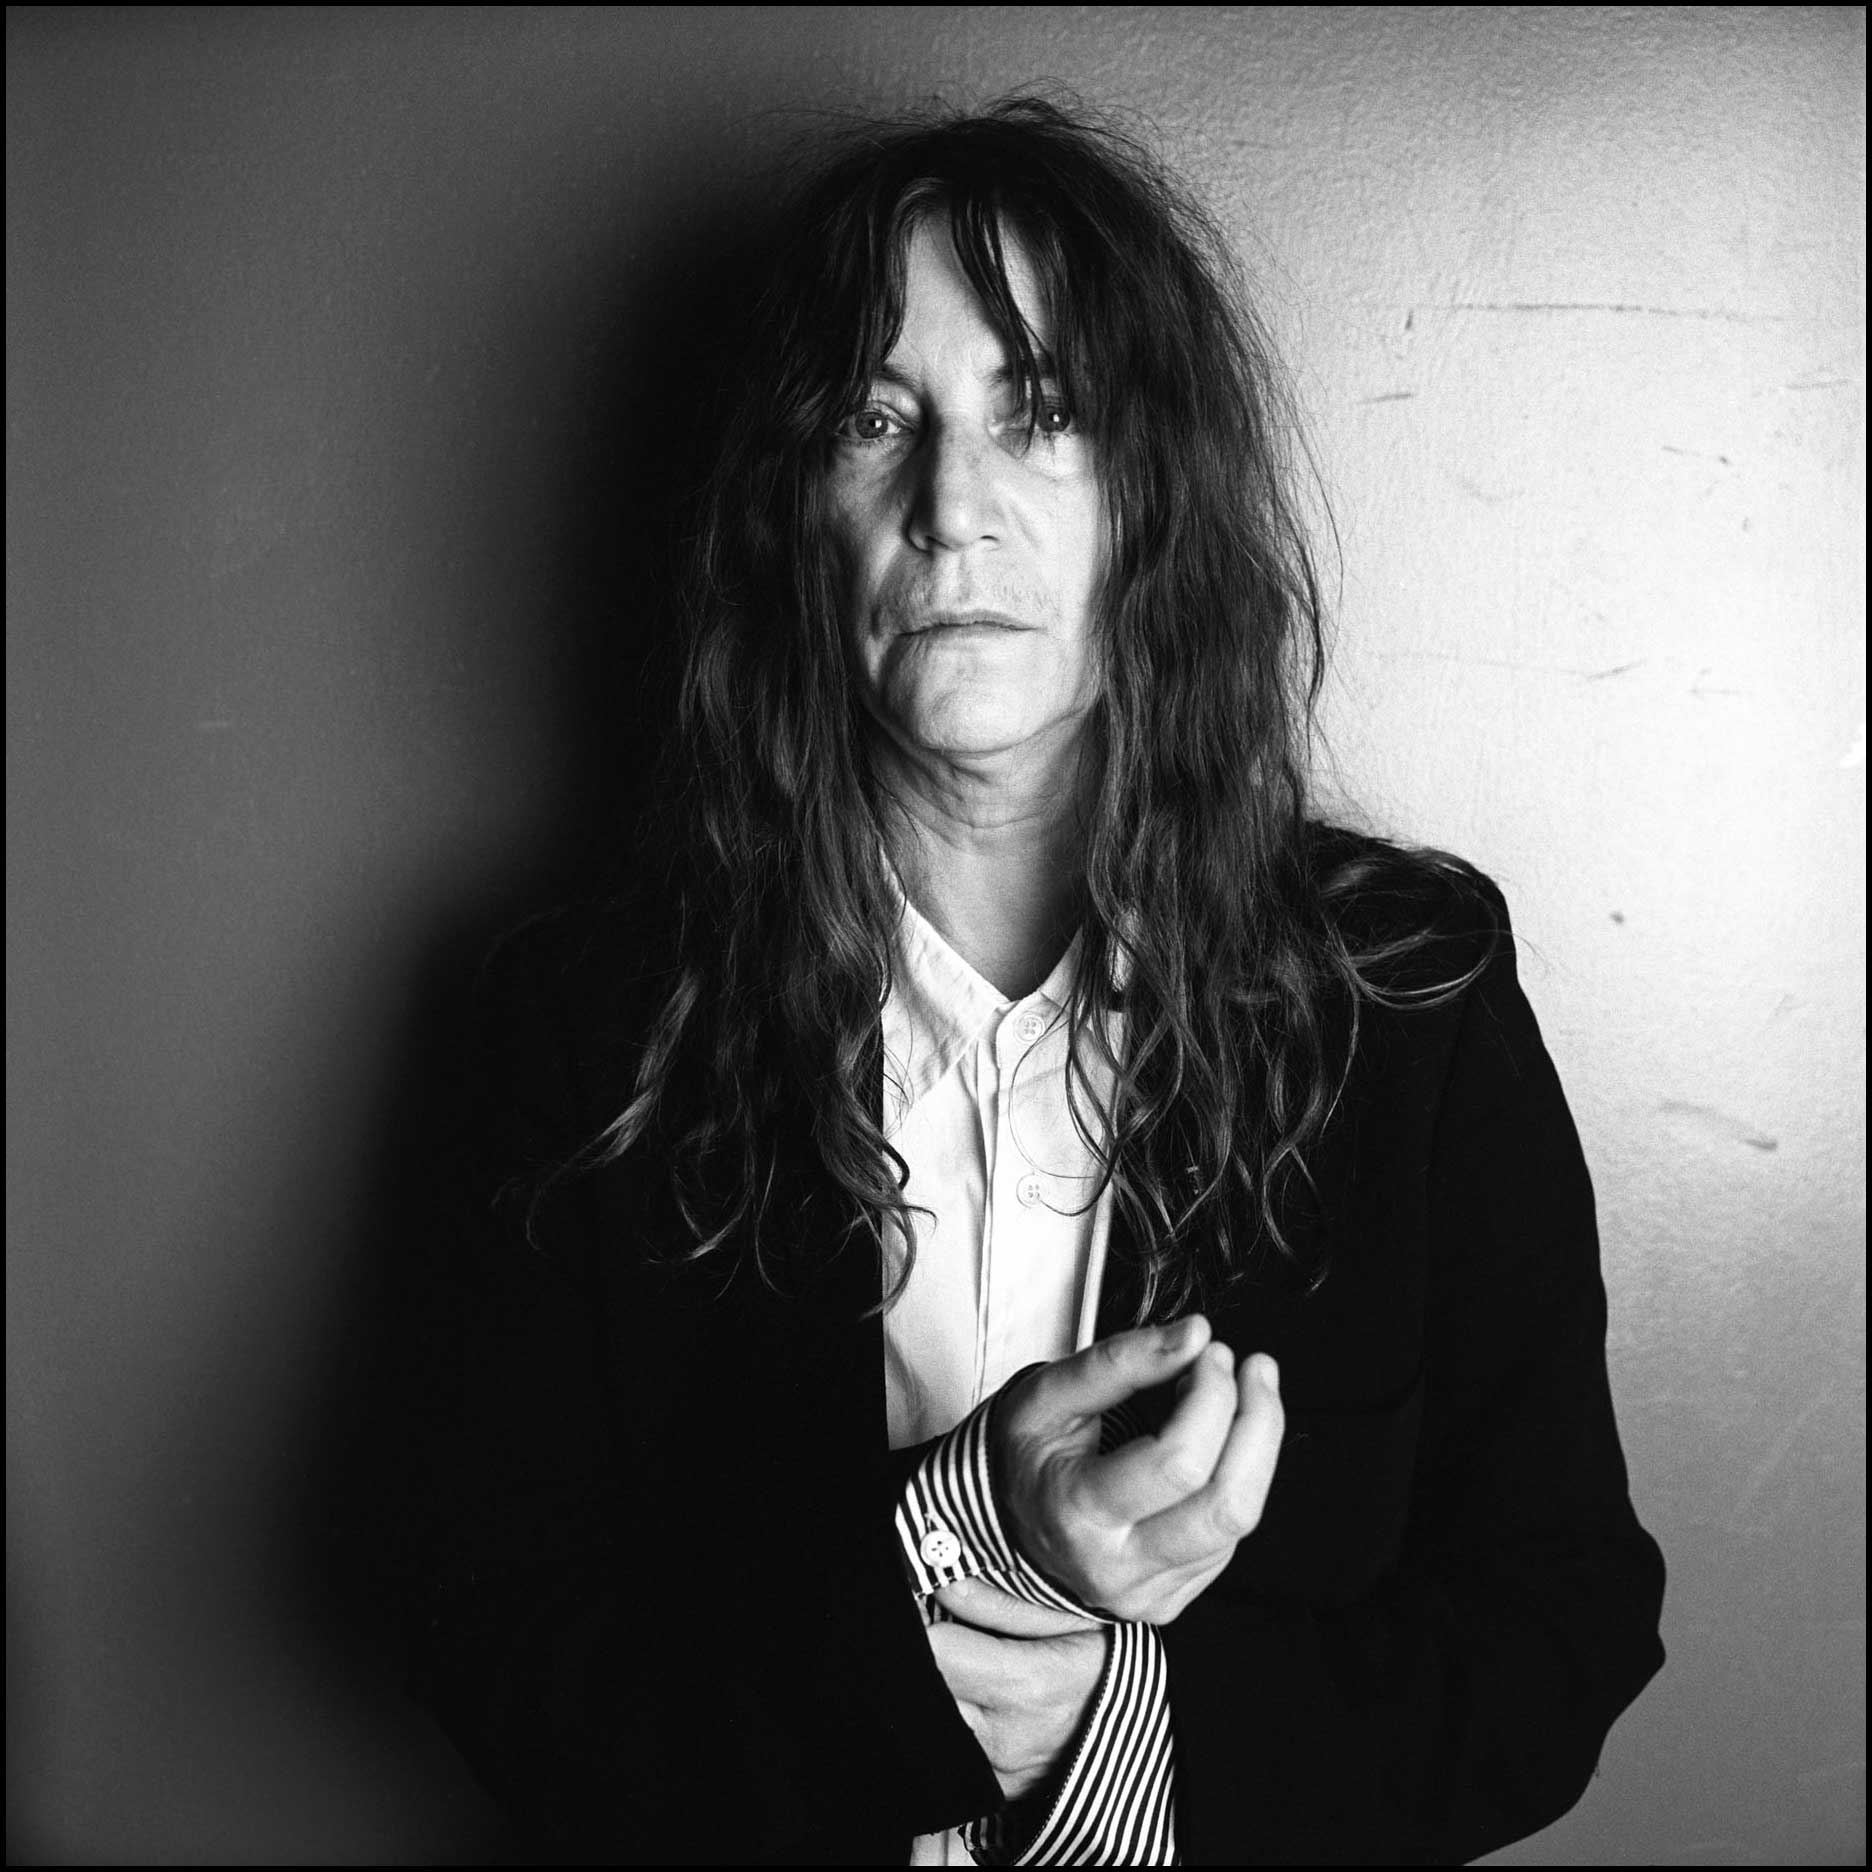 Steve Pyke |  Music |  Patti Smith